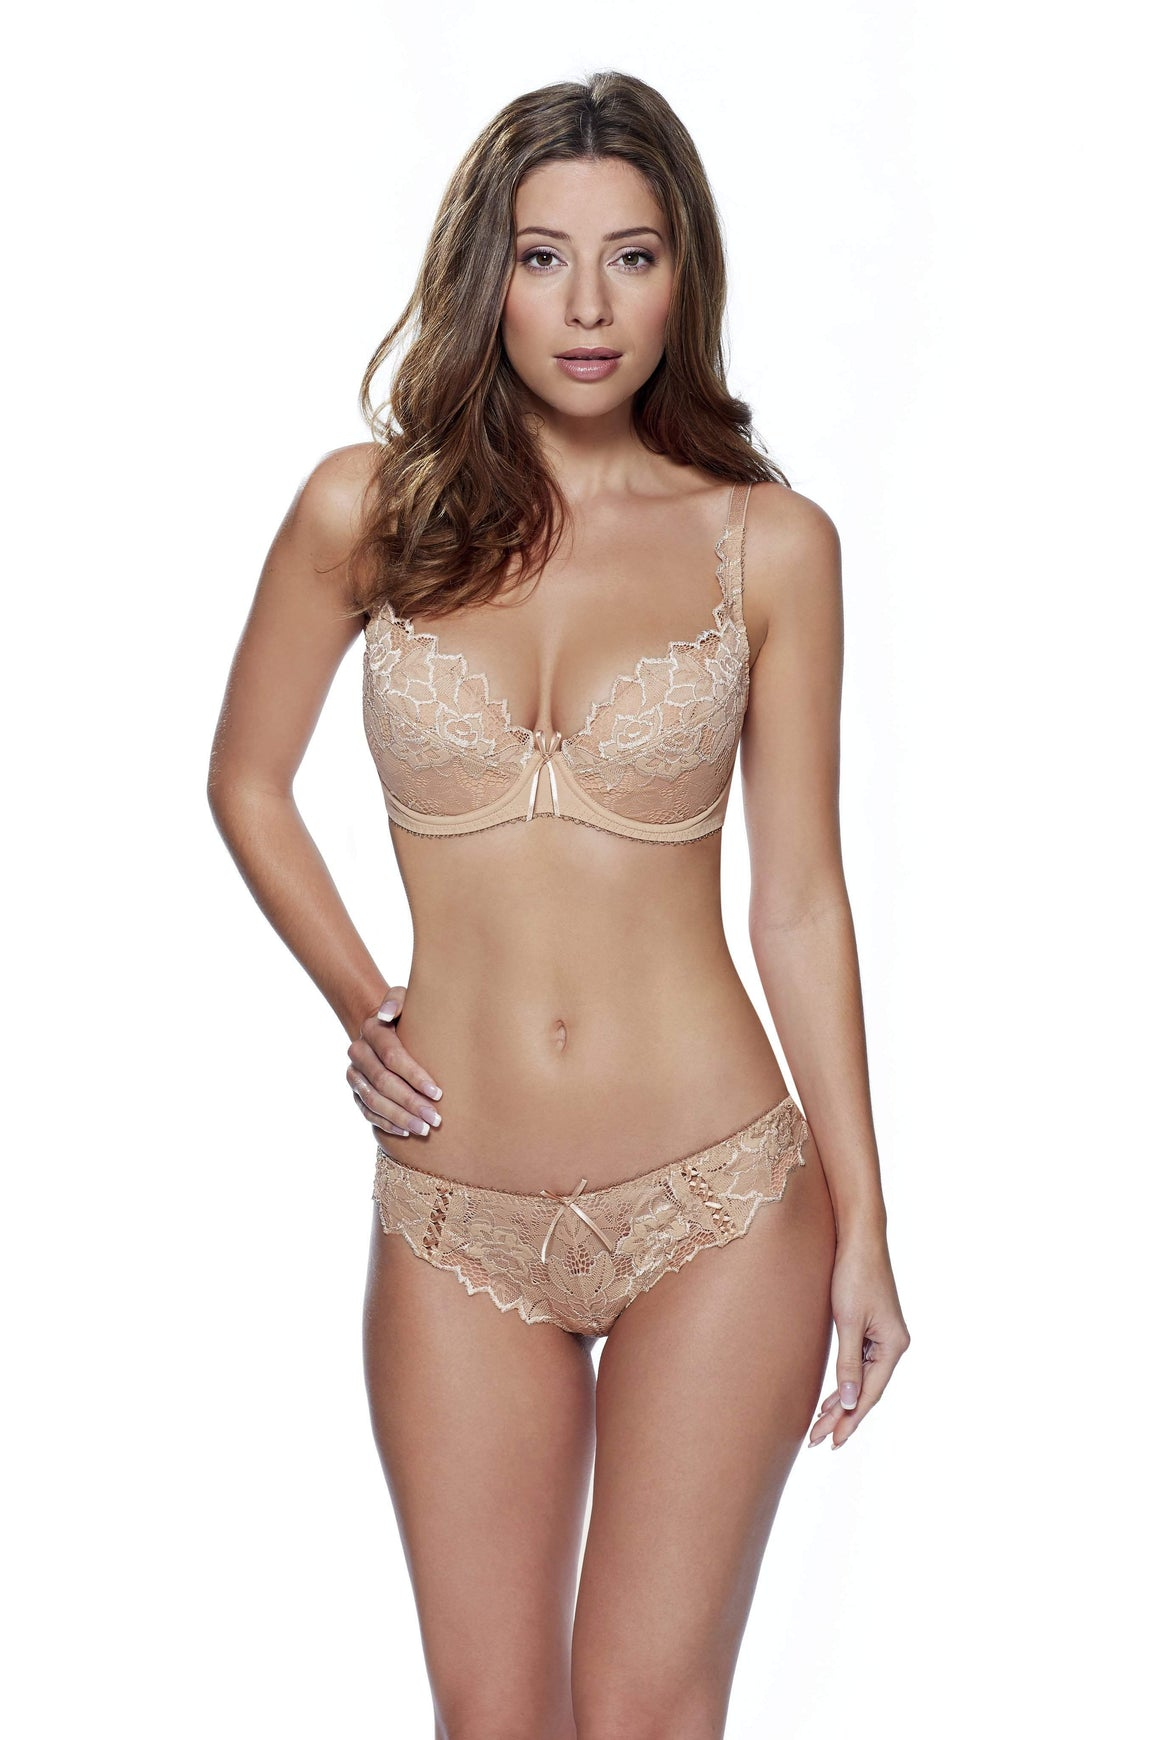 Fiore Thong in Nude by Lepel - Charnos / Lepel - Katys Boutique Lingerie USA